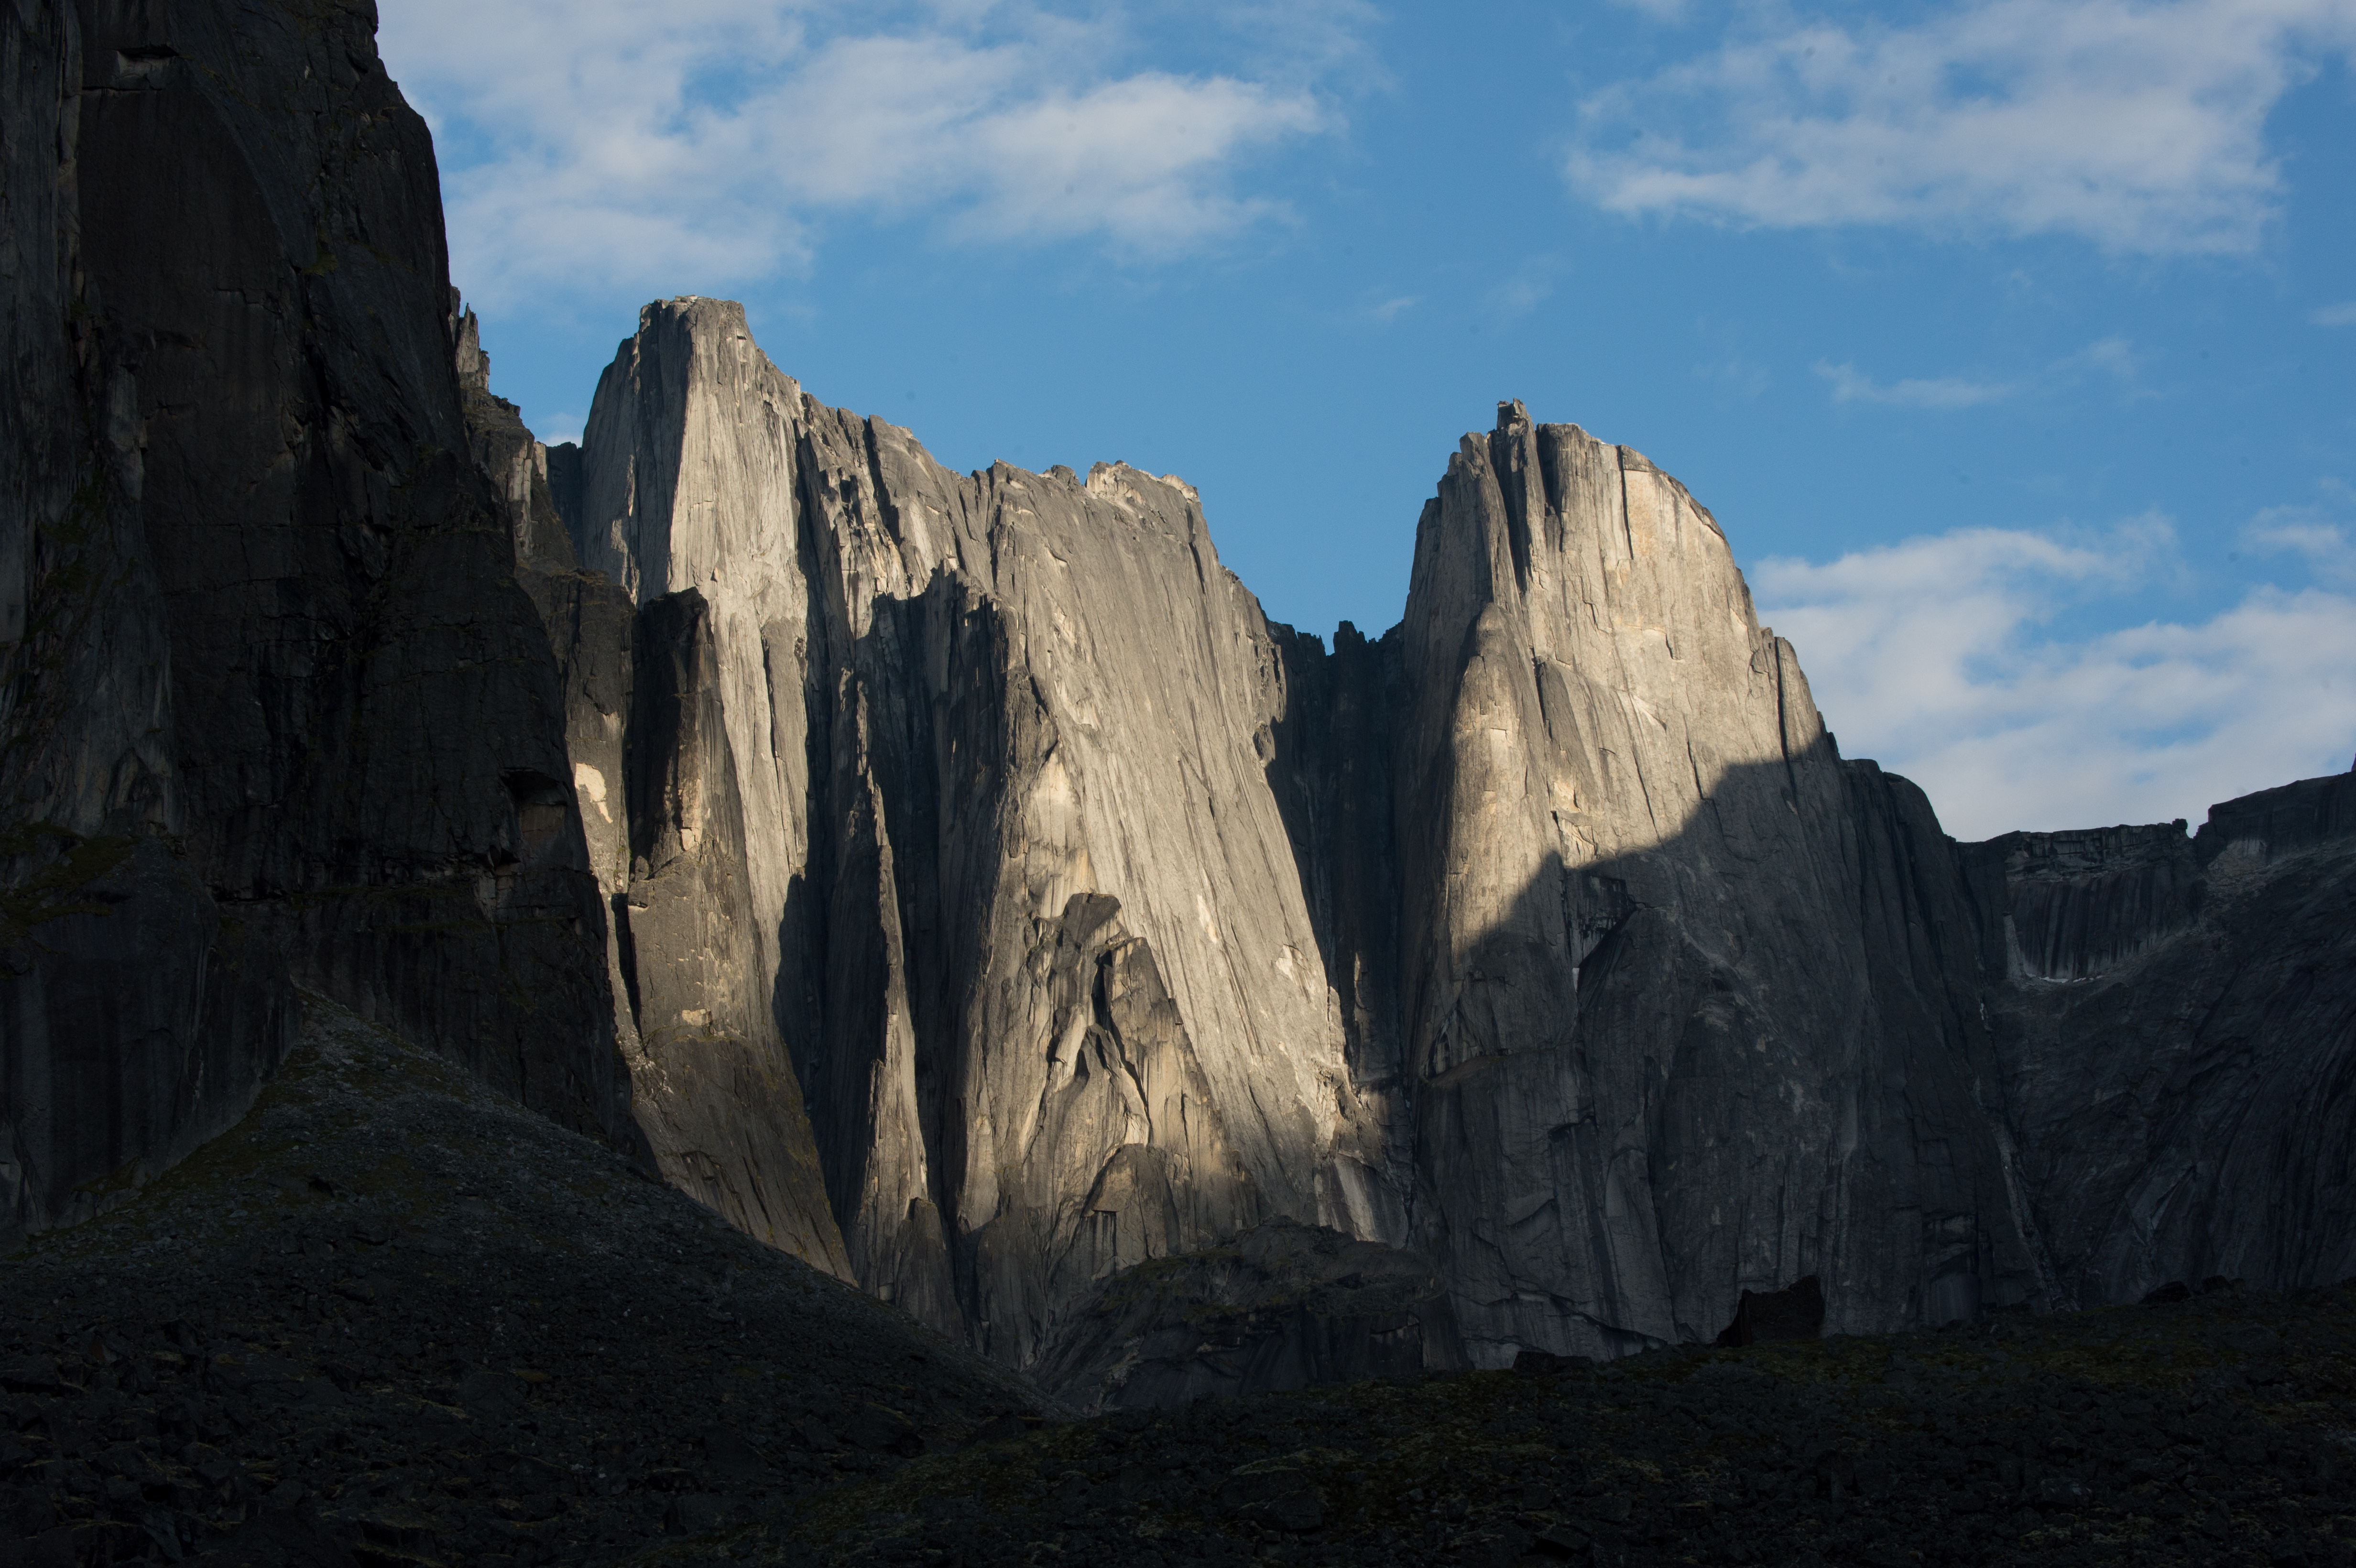 Cirque of the unclimbables chad copeland published izmirmasajfo Image collections